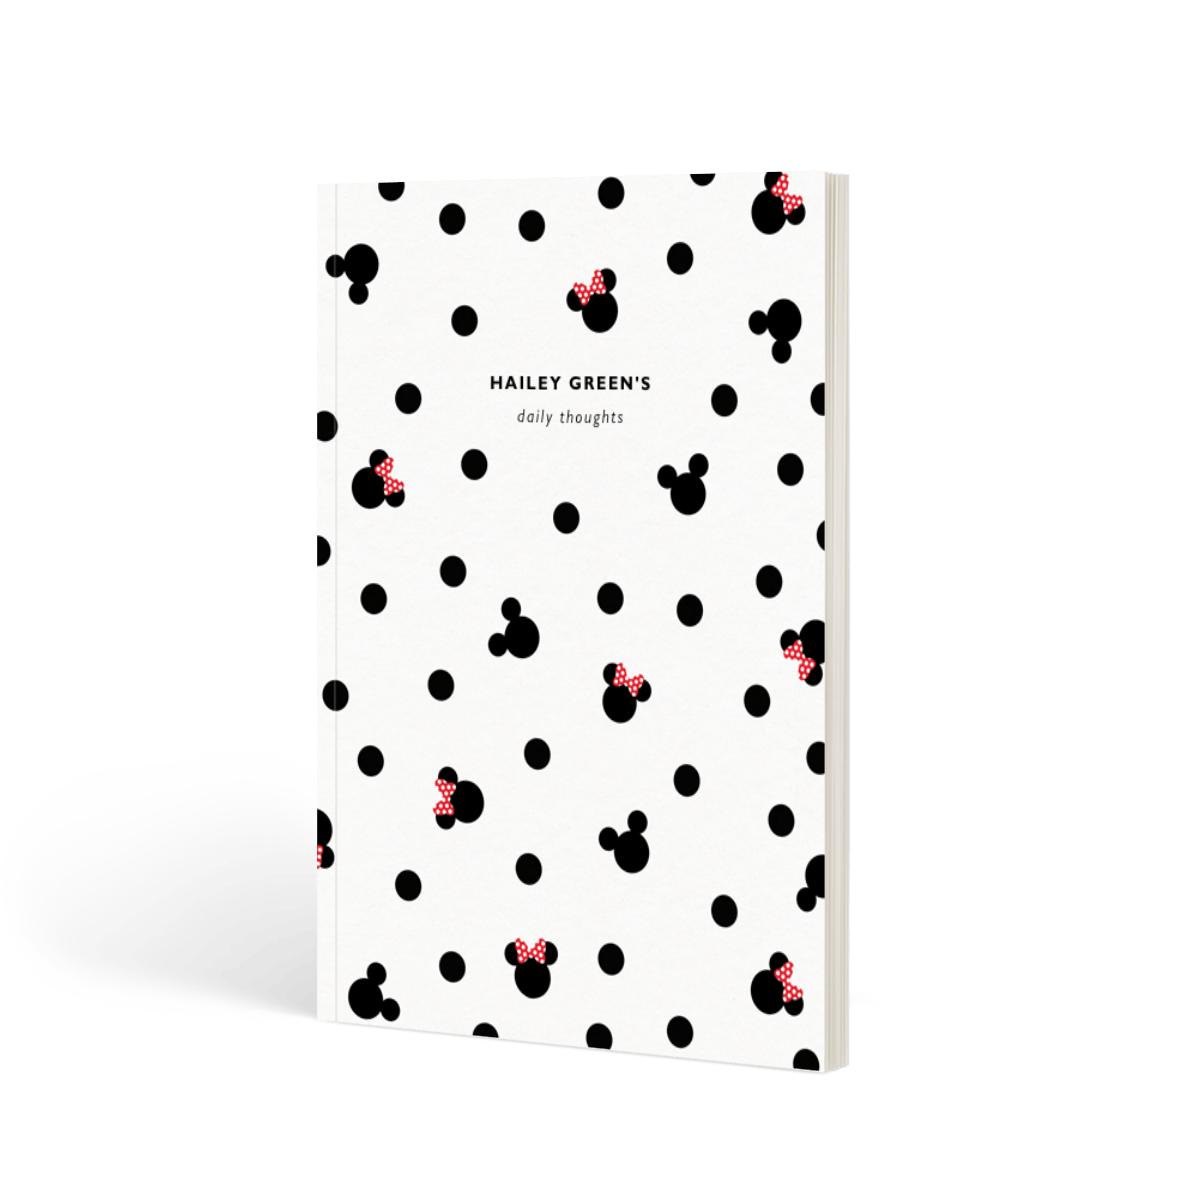 Https%3a%2f%2fwww.papier.com%2fproduct image%2f55821%2f6%2fmickey minnie mouse 13406 front 1575301686.png?ixlib=rb 1.1